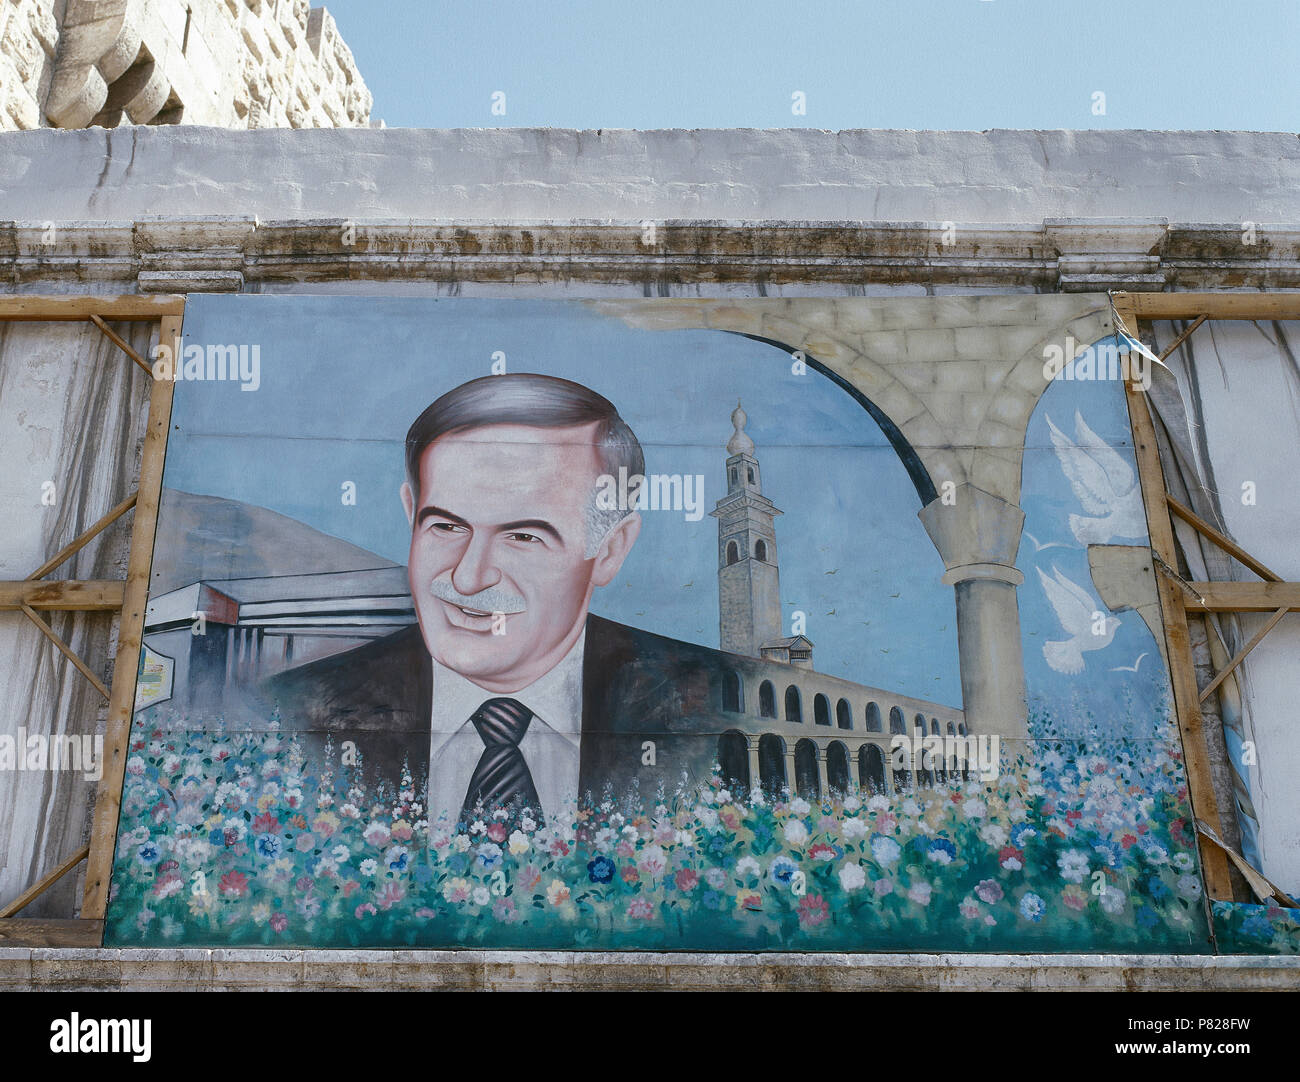 Hafez Al-Assad (1930-2000). 18th President of Syria, from 1971 to 2000. Proganda posters. Damascus. Syria. - Stock Image